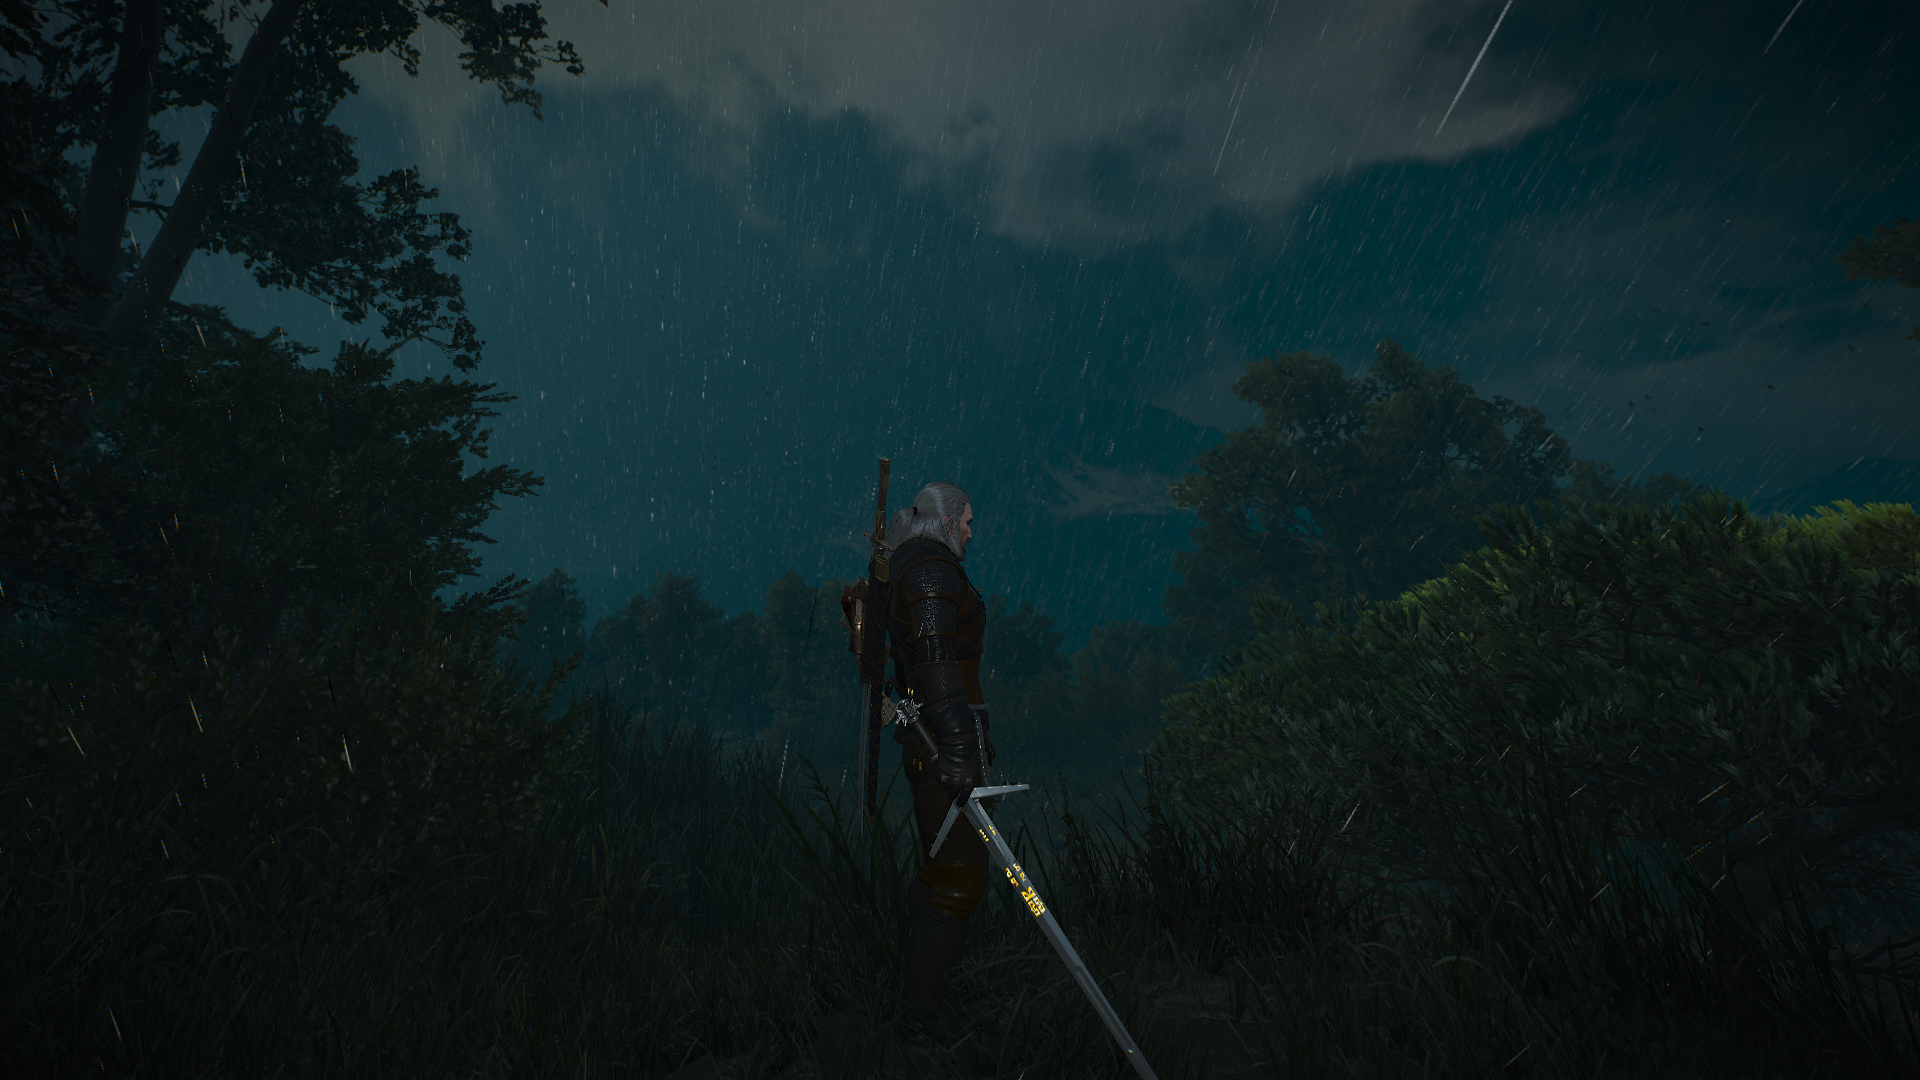 The Witcher 3 03.01.2019 23_51_32.png - Witcher 3: Wild Hunt, the